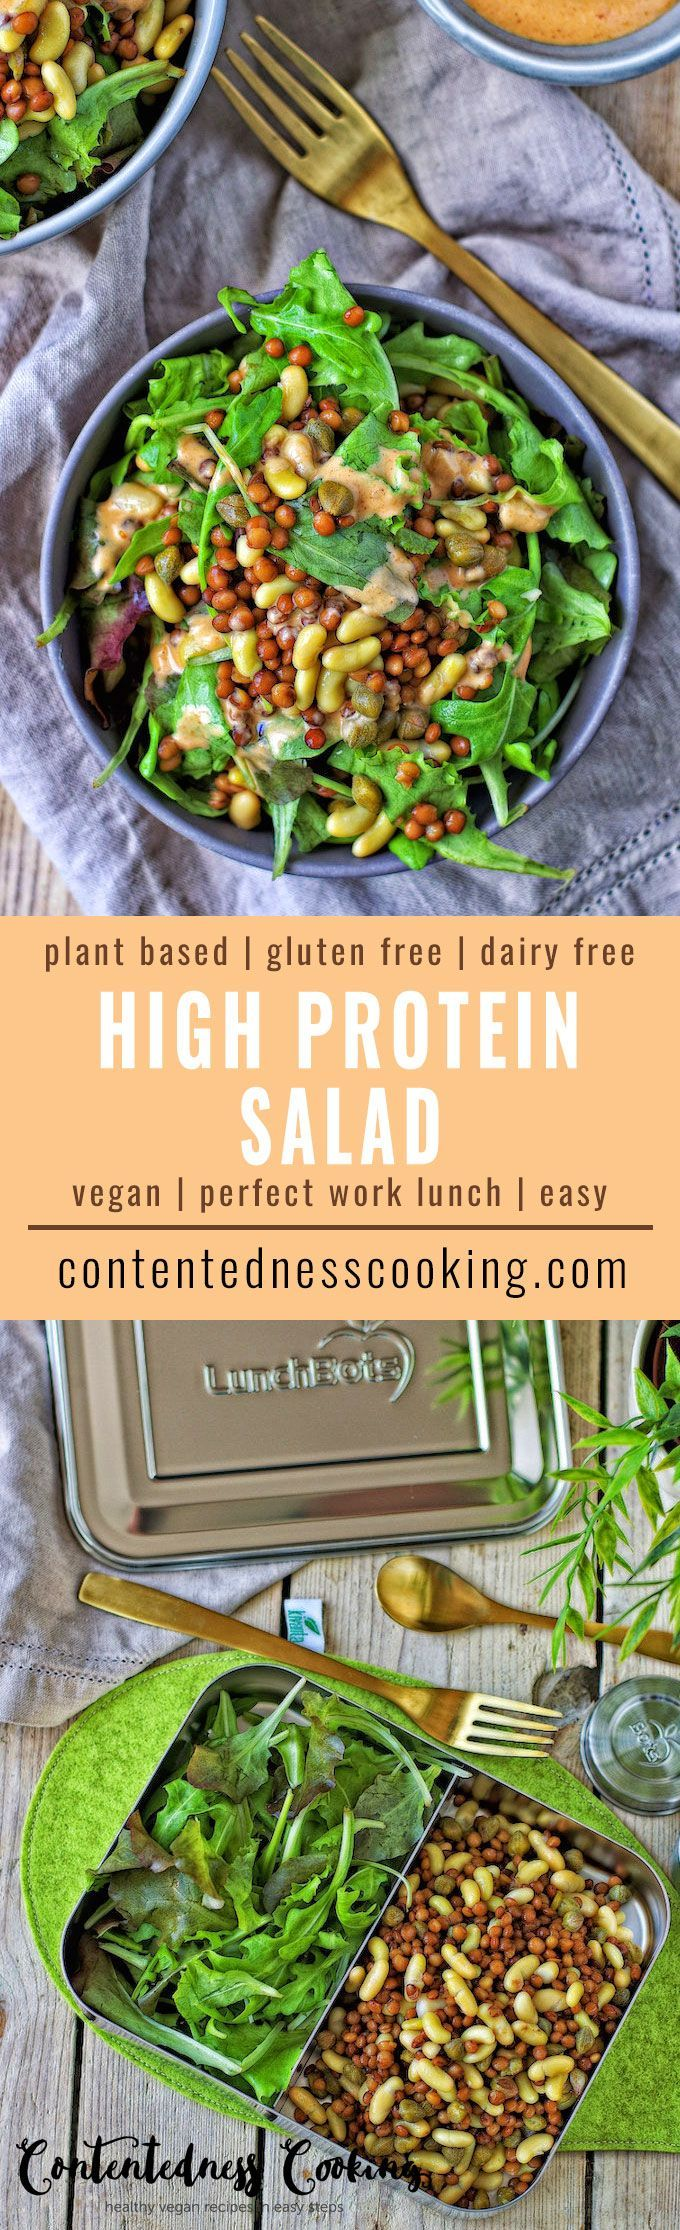 High Protein Salad Contentedness Cooking Recipe Protein Salad High Protein Salads Healthy Herbs